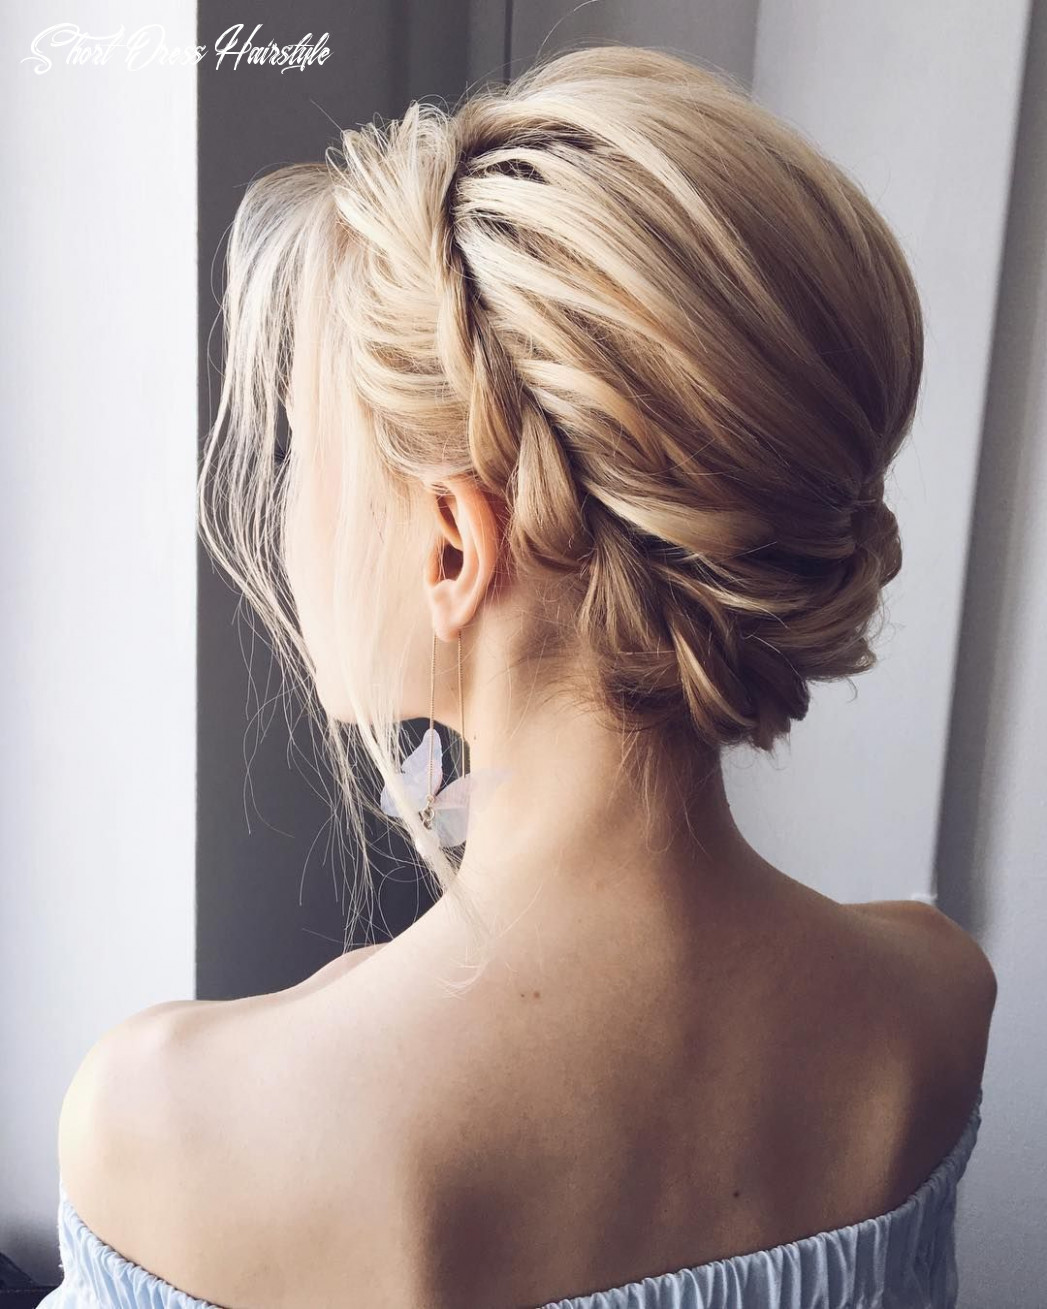 Fabulous hairstyles for every wedding dress neckline whether you